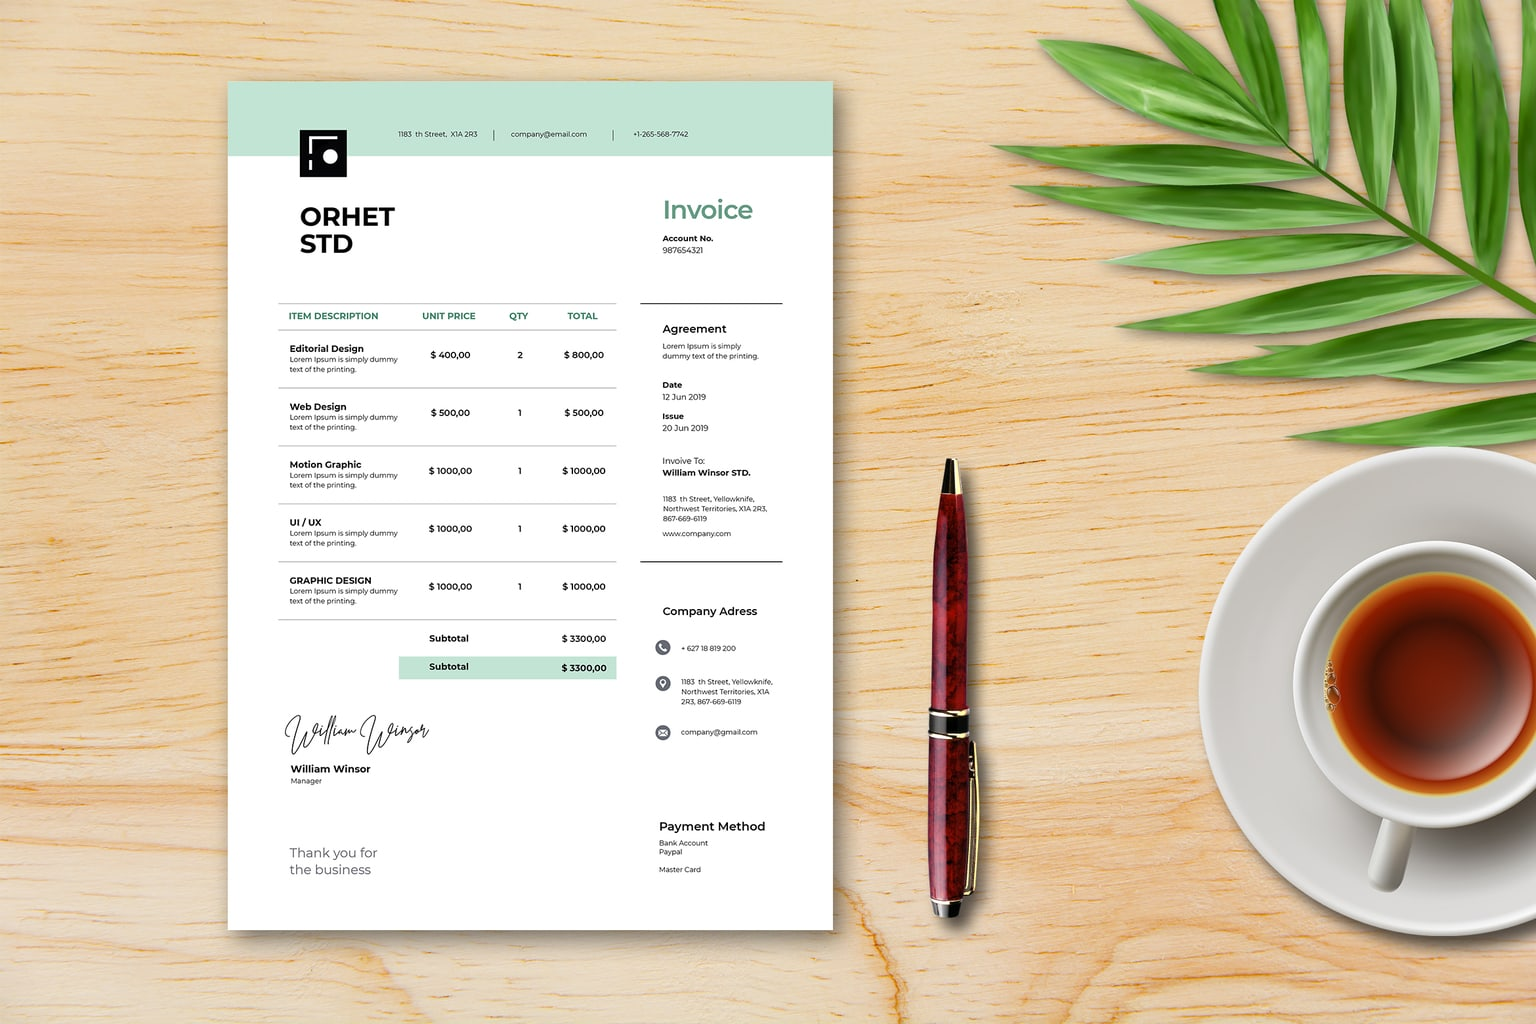 Invoice - Digital Creative